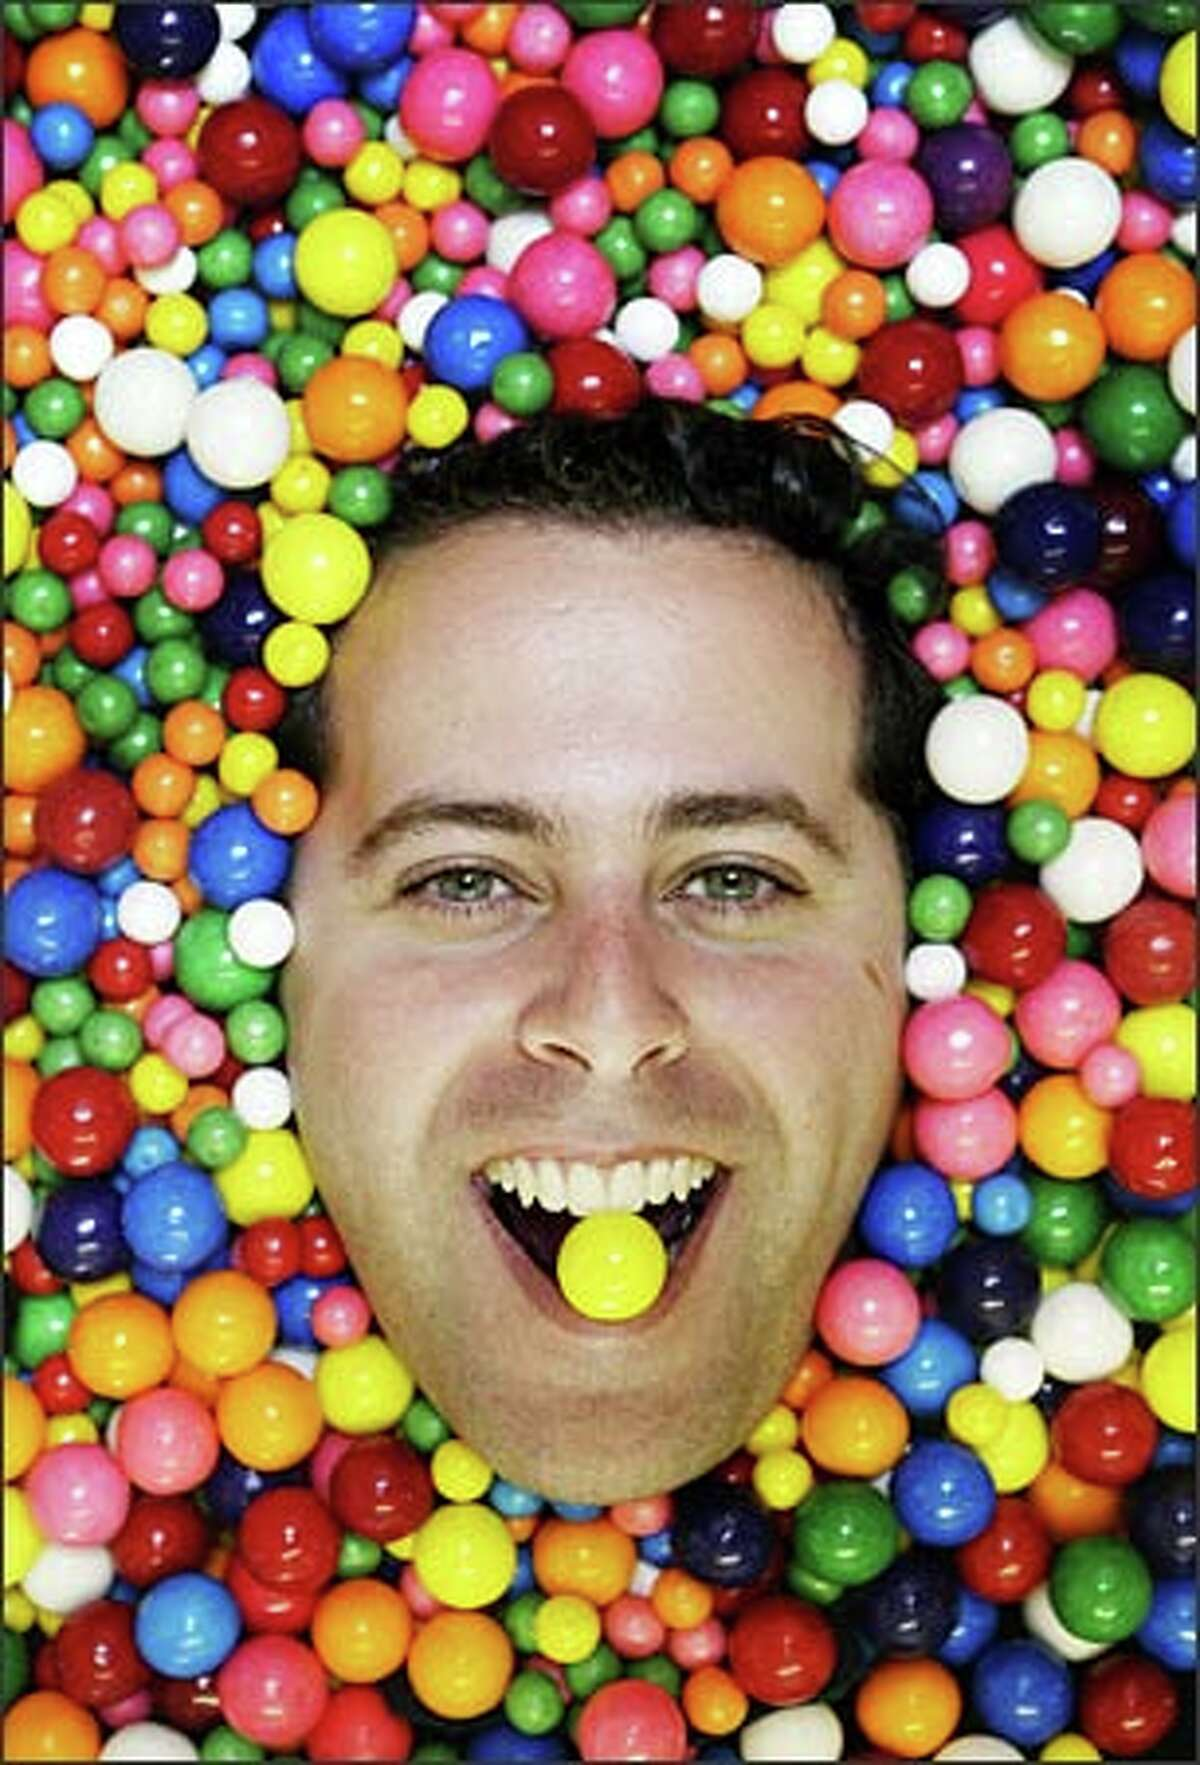 Tal Moore founded Seattle-based Gumballs.com in his bedroom when he was 25 years old. The gumball machine company has grown into an international business with millions of dollars in sales.